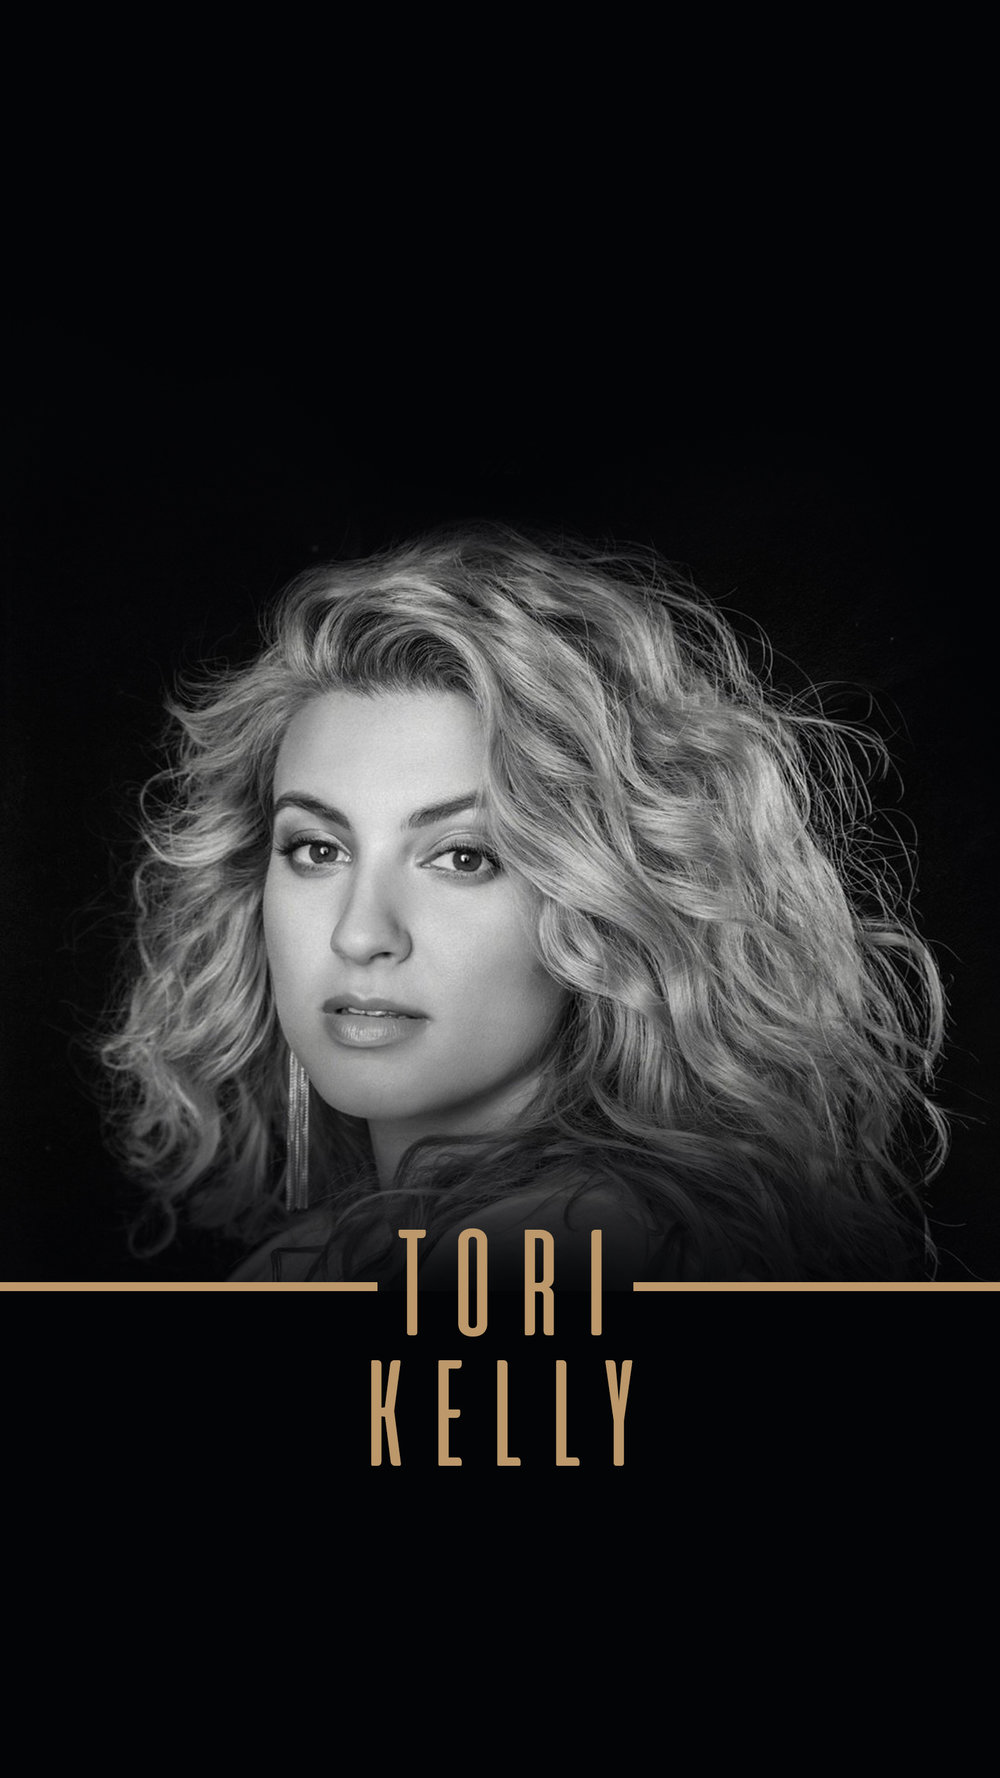 torikelly-lockscreen13.jpg